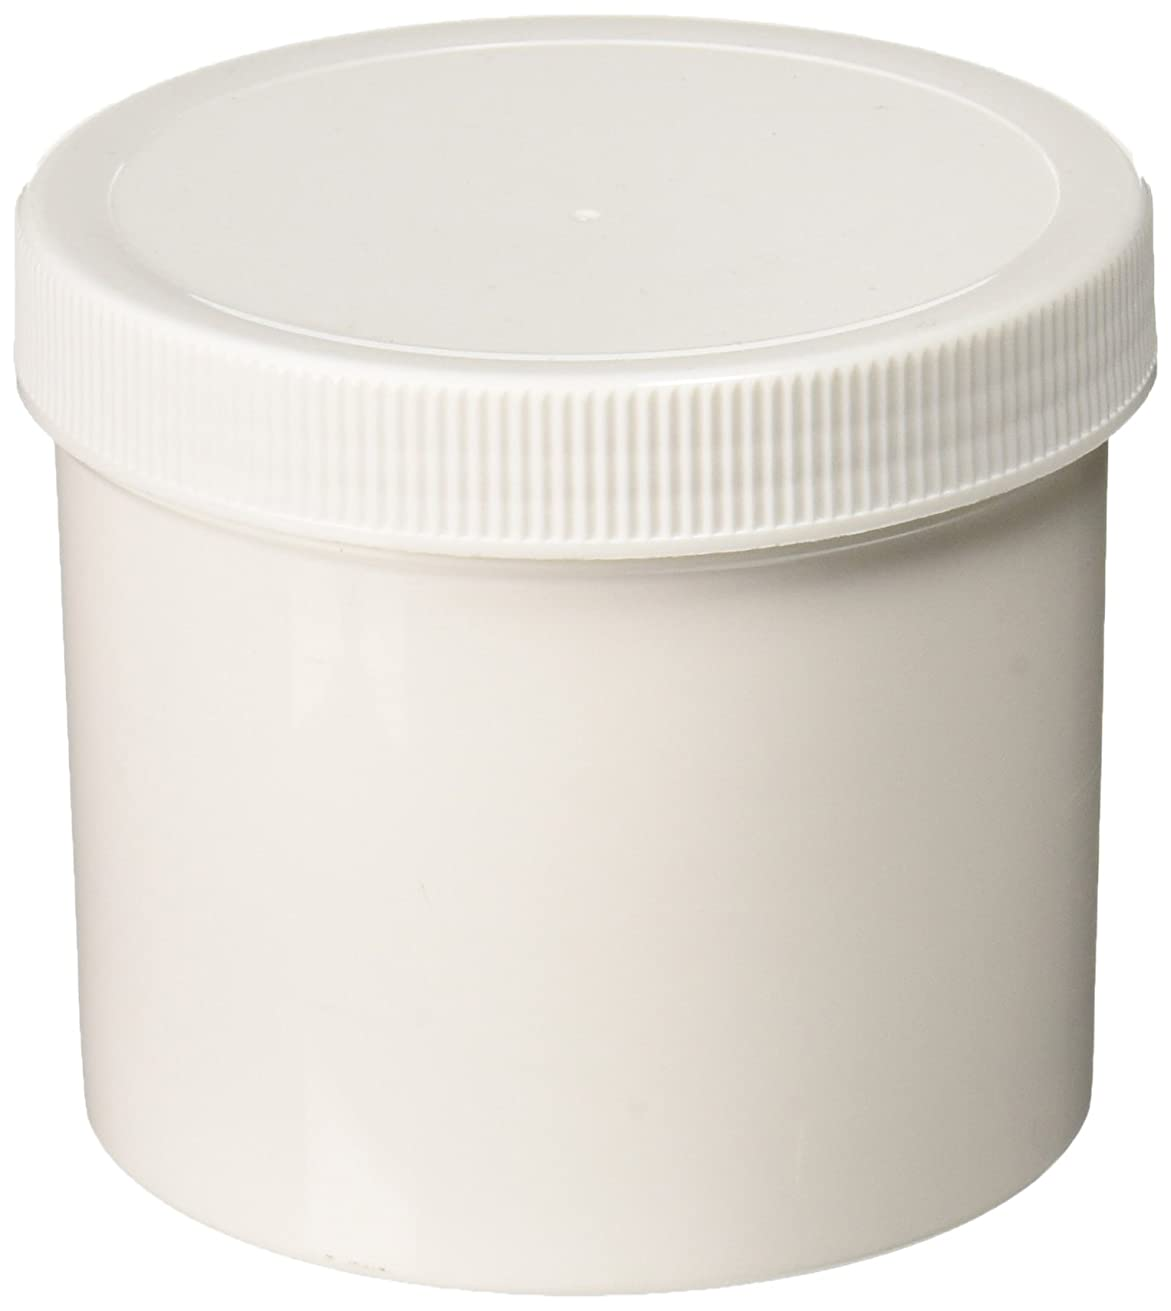 School Specialty 434048 Brush Cleaning Container, 4